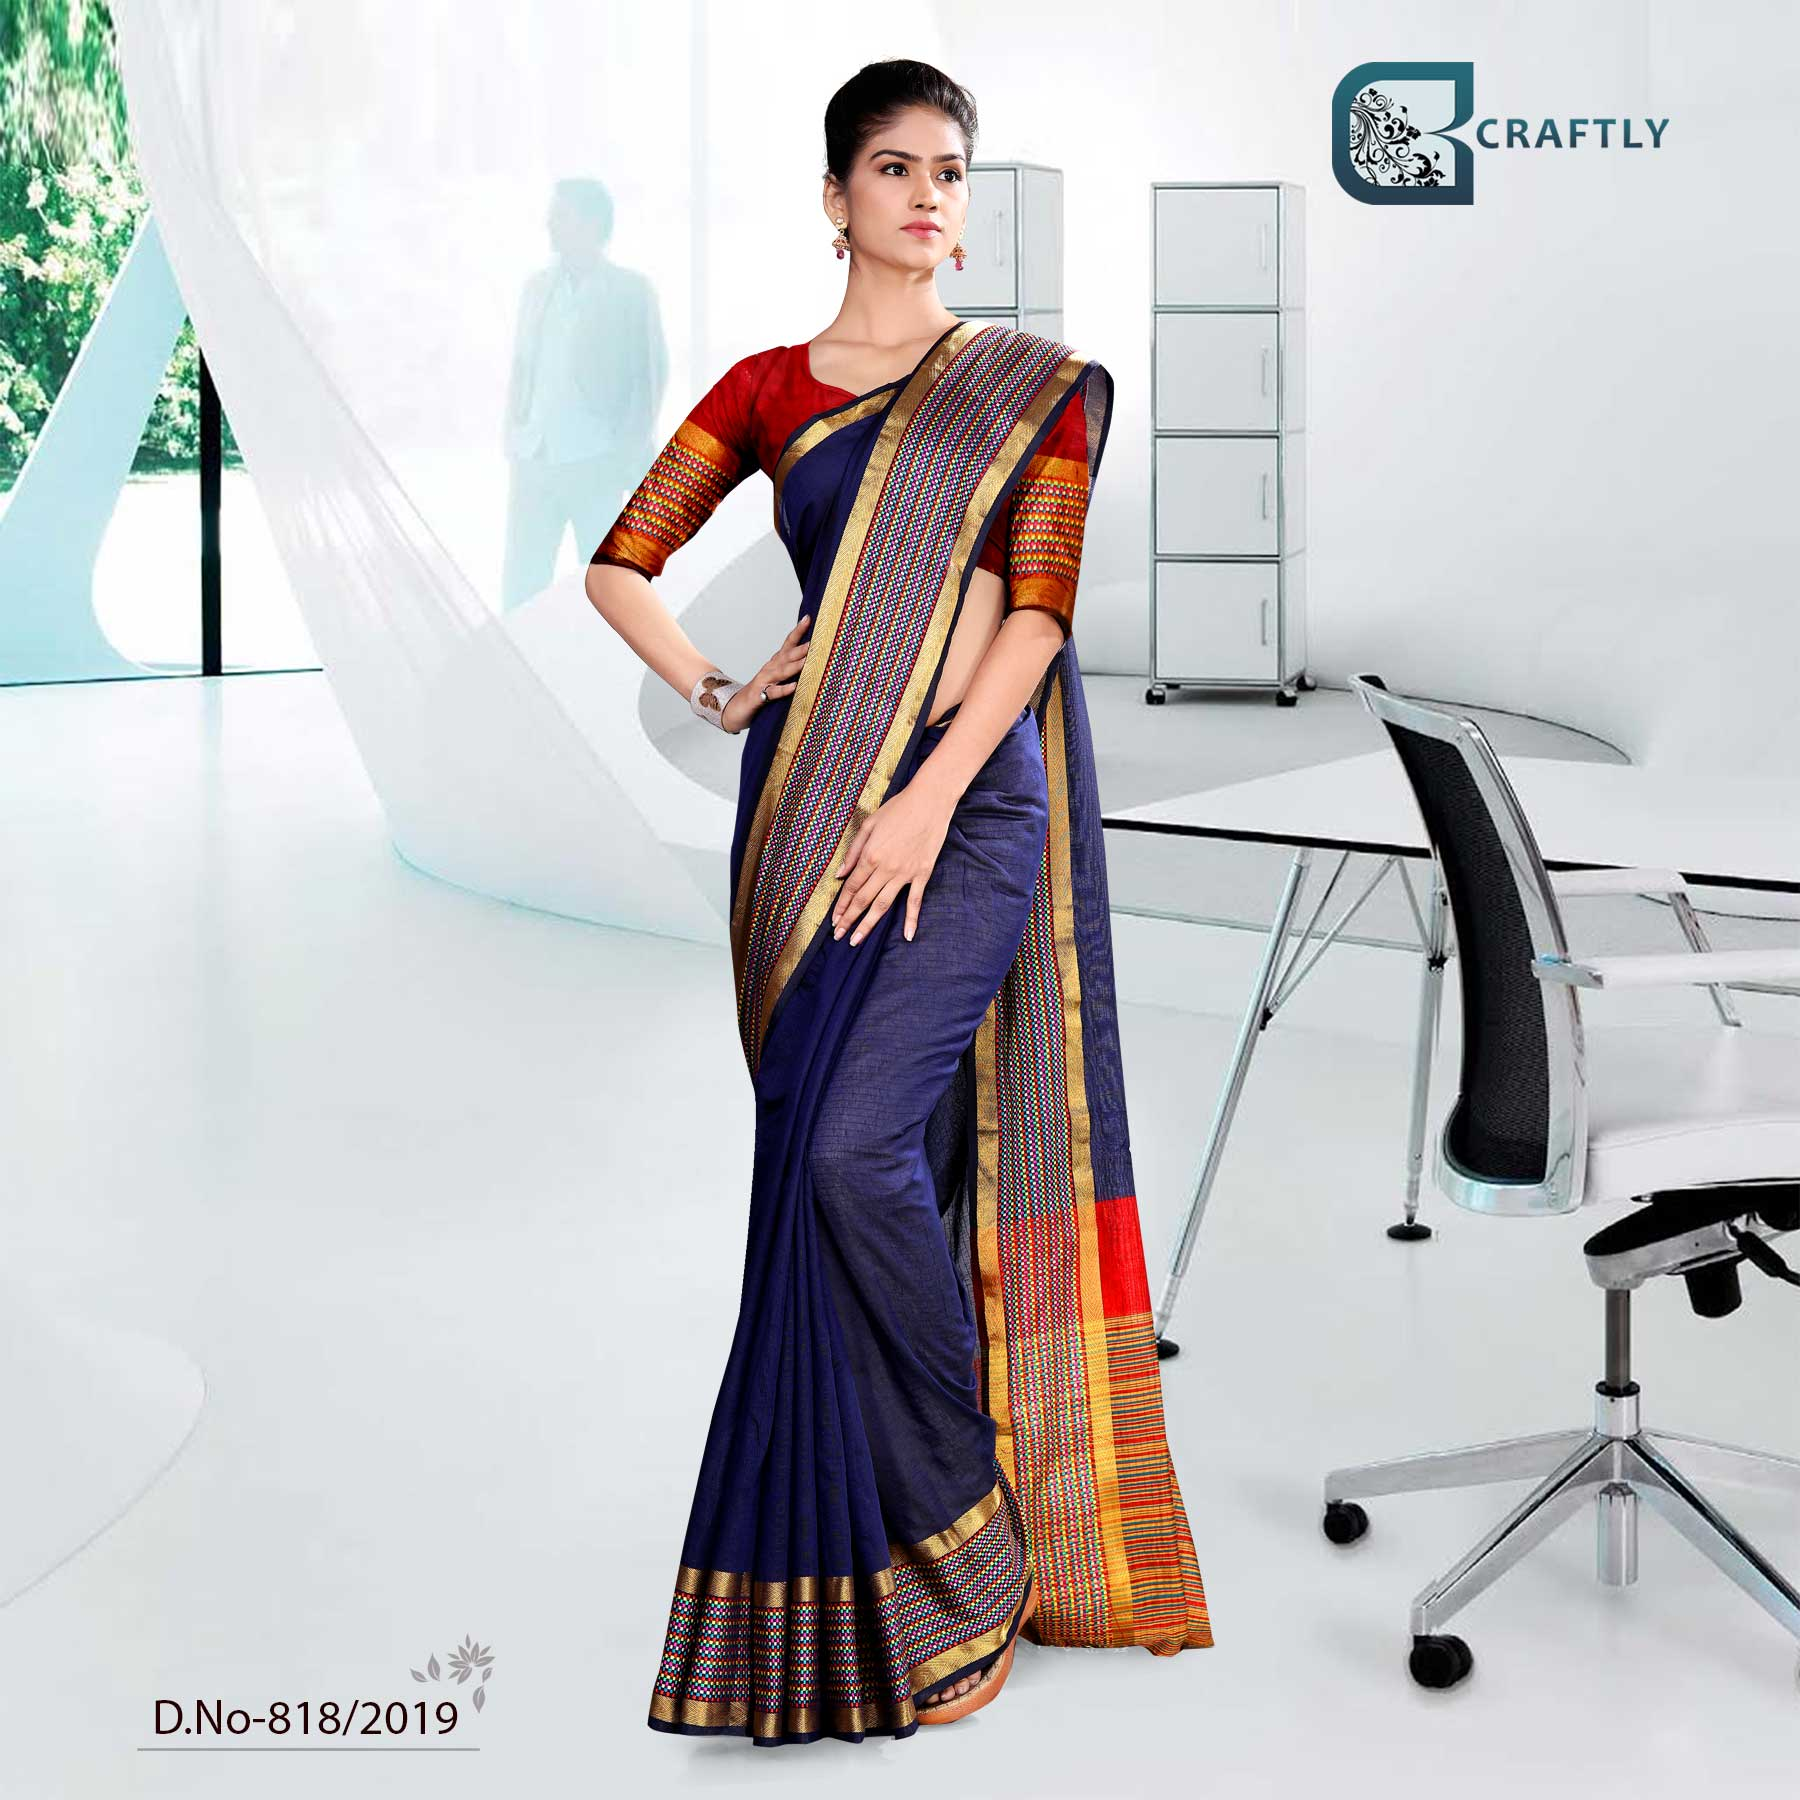 BLUE AND YELLOW WITH ORANGE COLOR  CRAFTLY COTTON CORPORATE UNIFORM SAREE